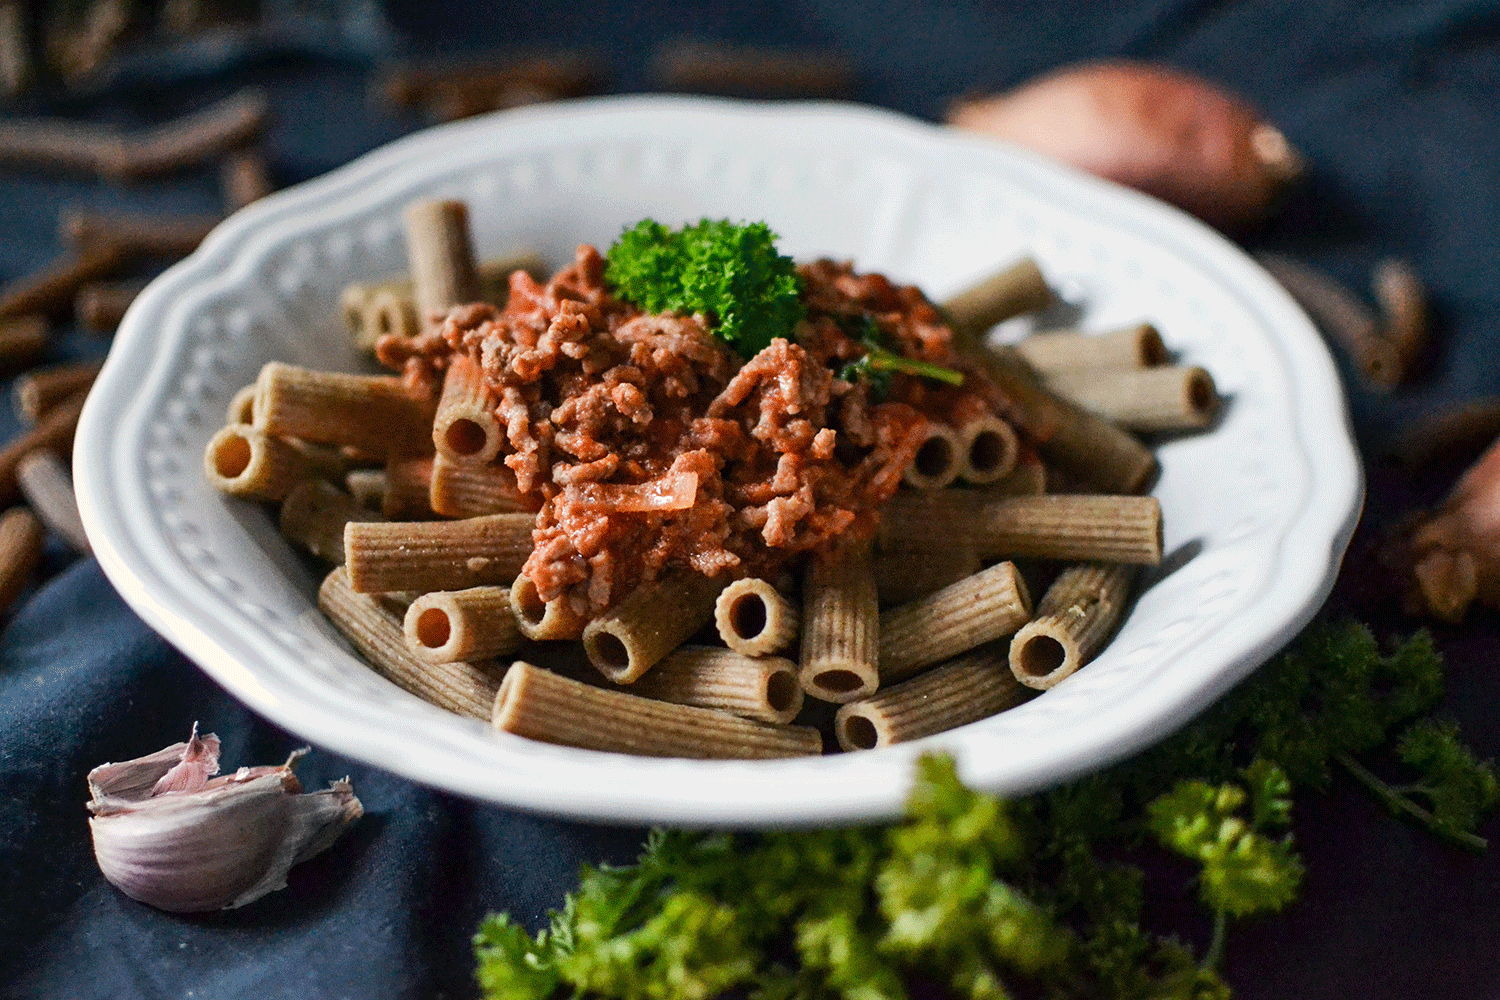 rezept low carb nudeln mit bolognese. Black Bedroom Furniture Sets. Home Design Ideas